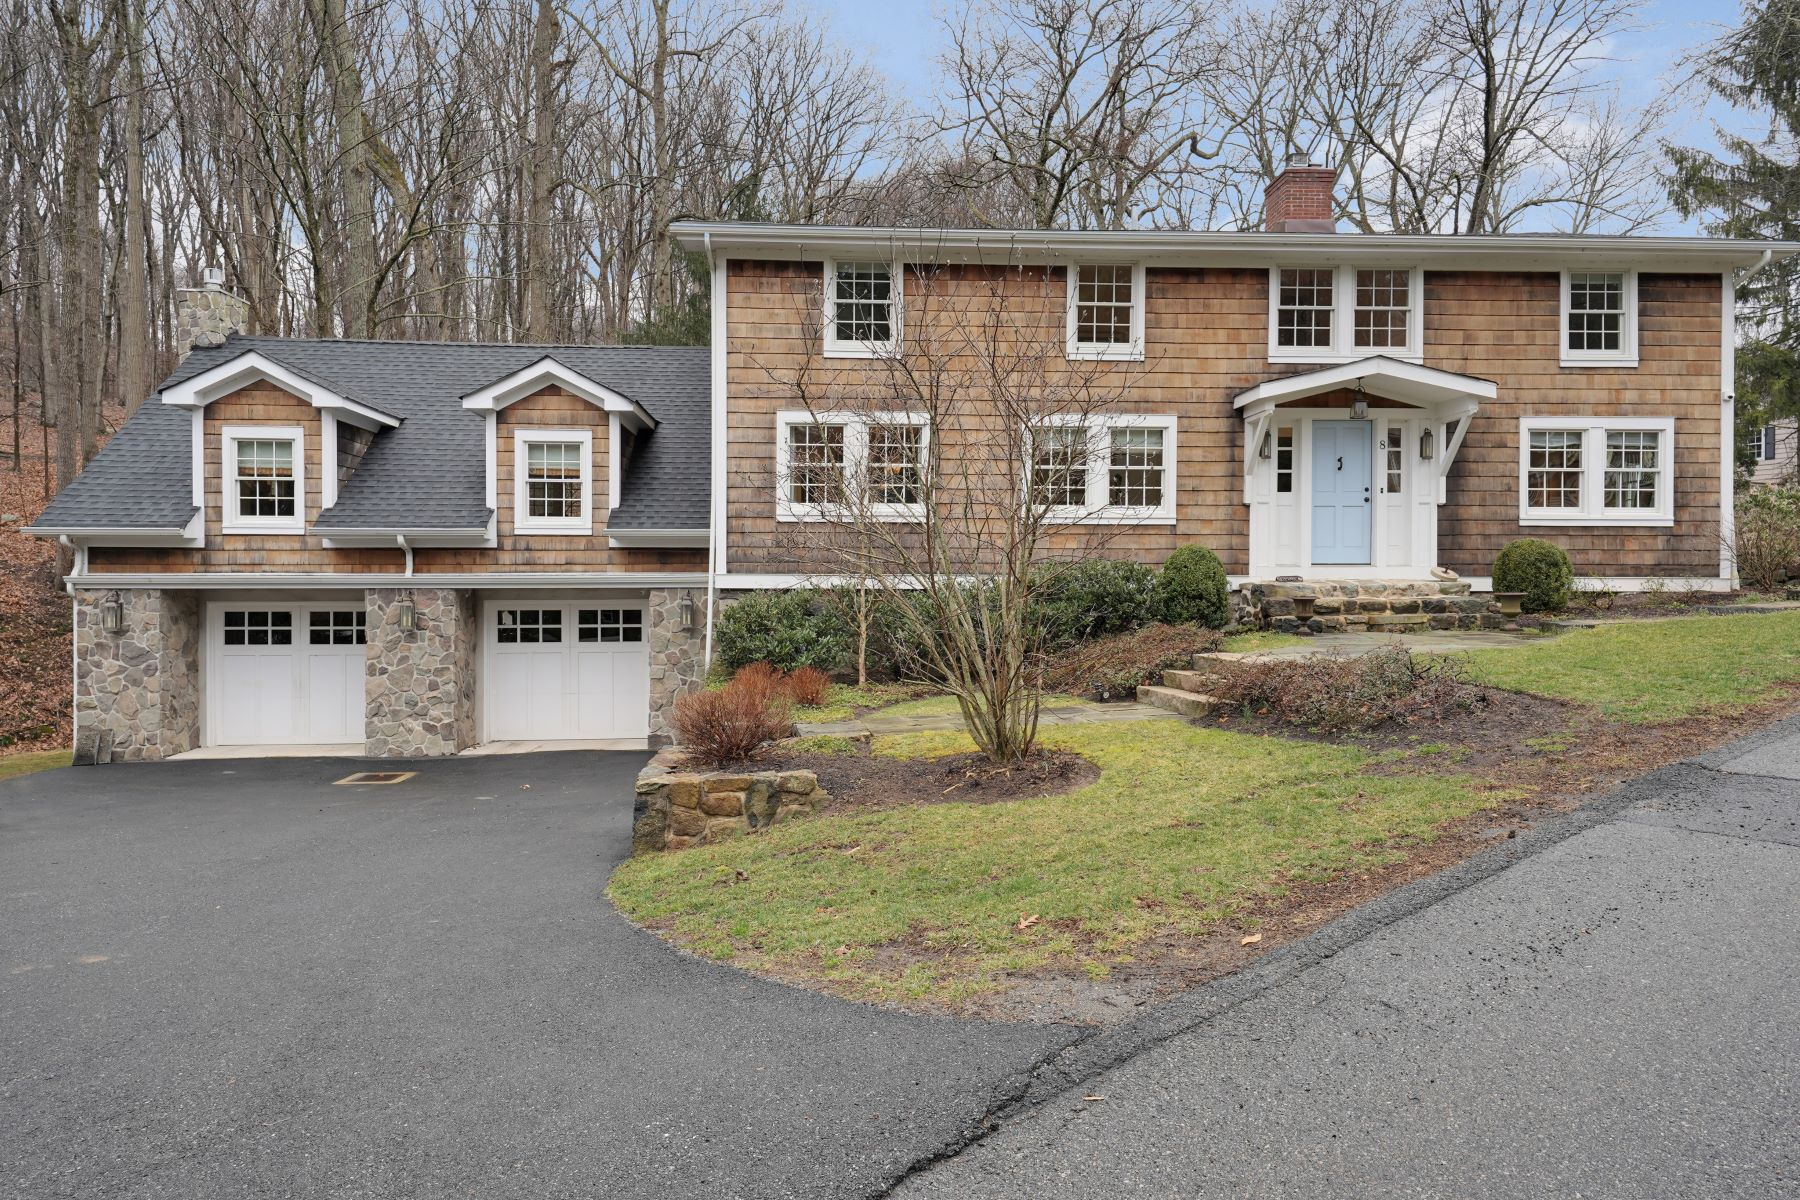 Single Family Homes for Sale at Complete Renovation 8 Woodland Road Mendham, New Jersey 07945 United States